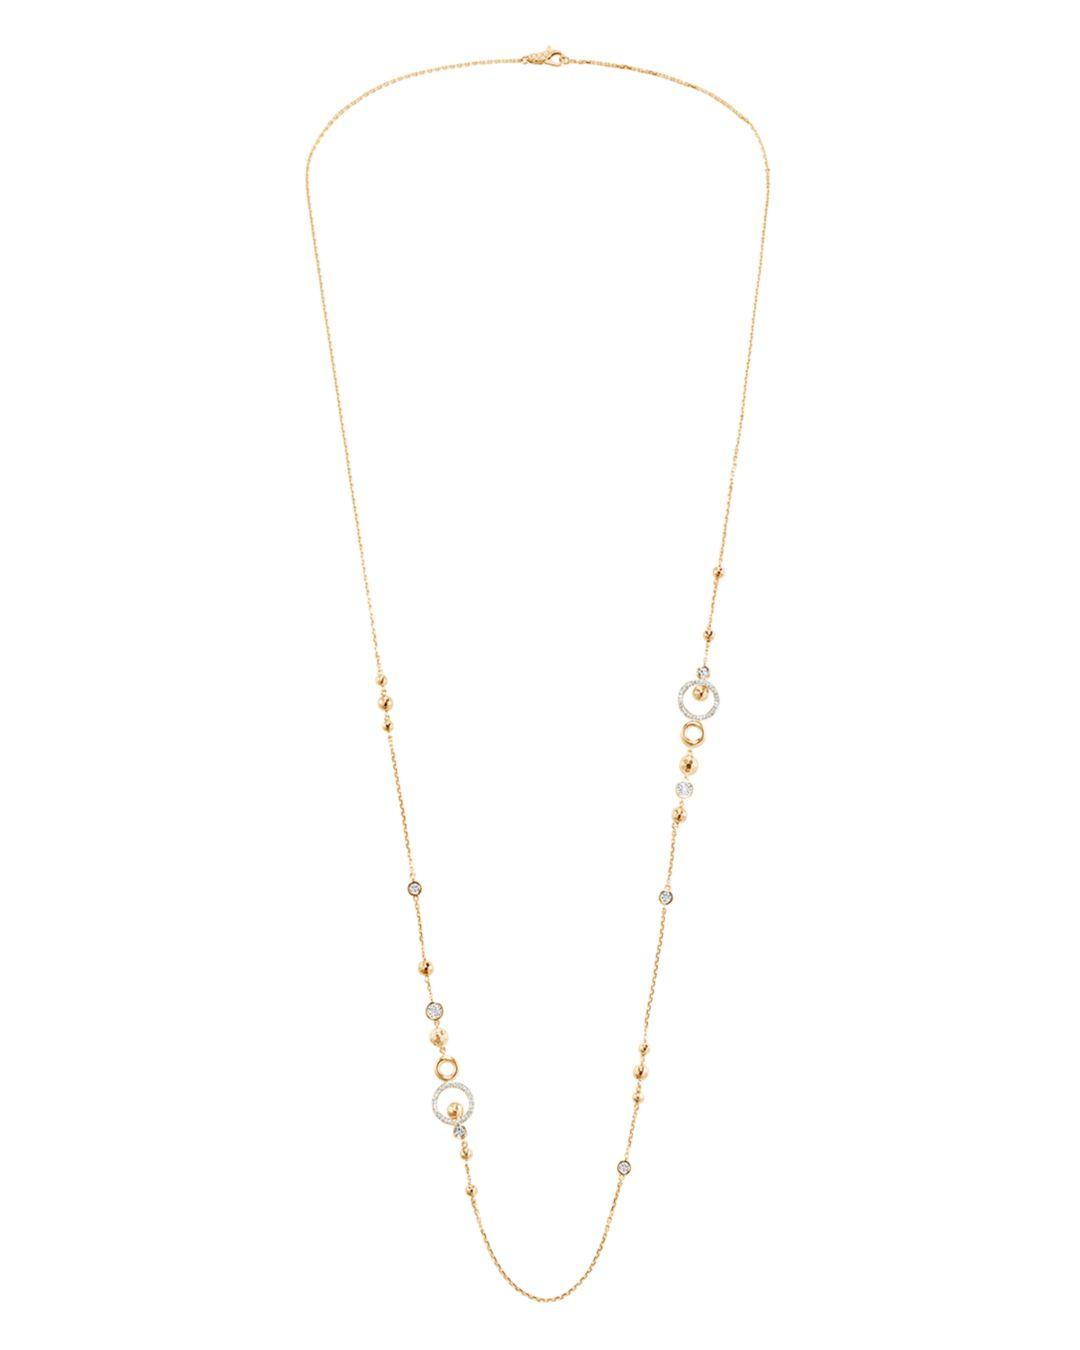 John Hardy 18K Yellow Gold Dot Pavé Diamond Sautoir Chain Intended For Latest White Gold Diamond Sautoir Necklaces (Gallery 11 of 25)